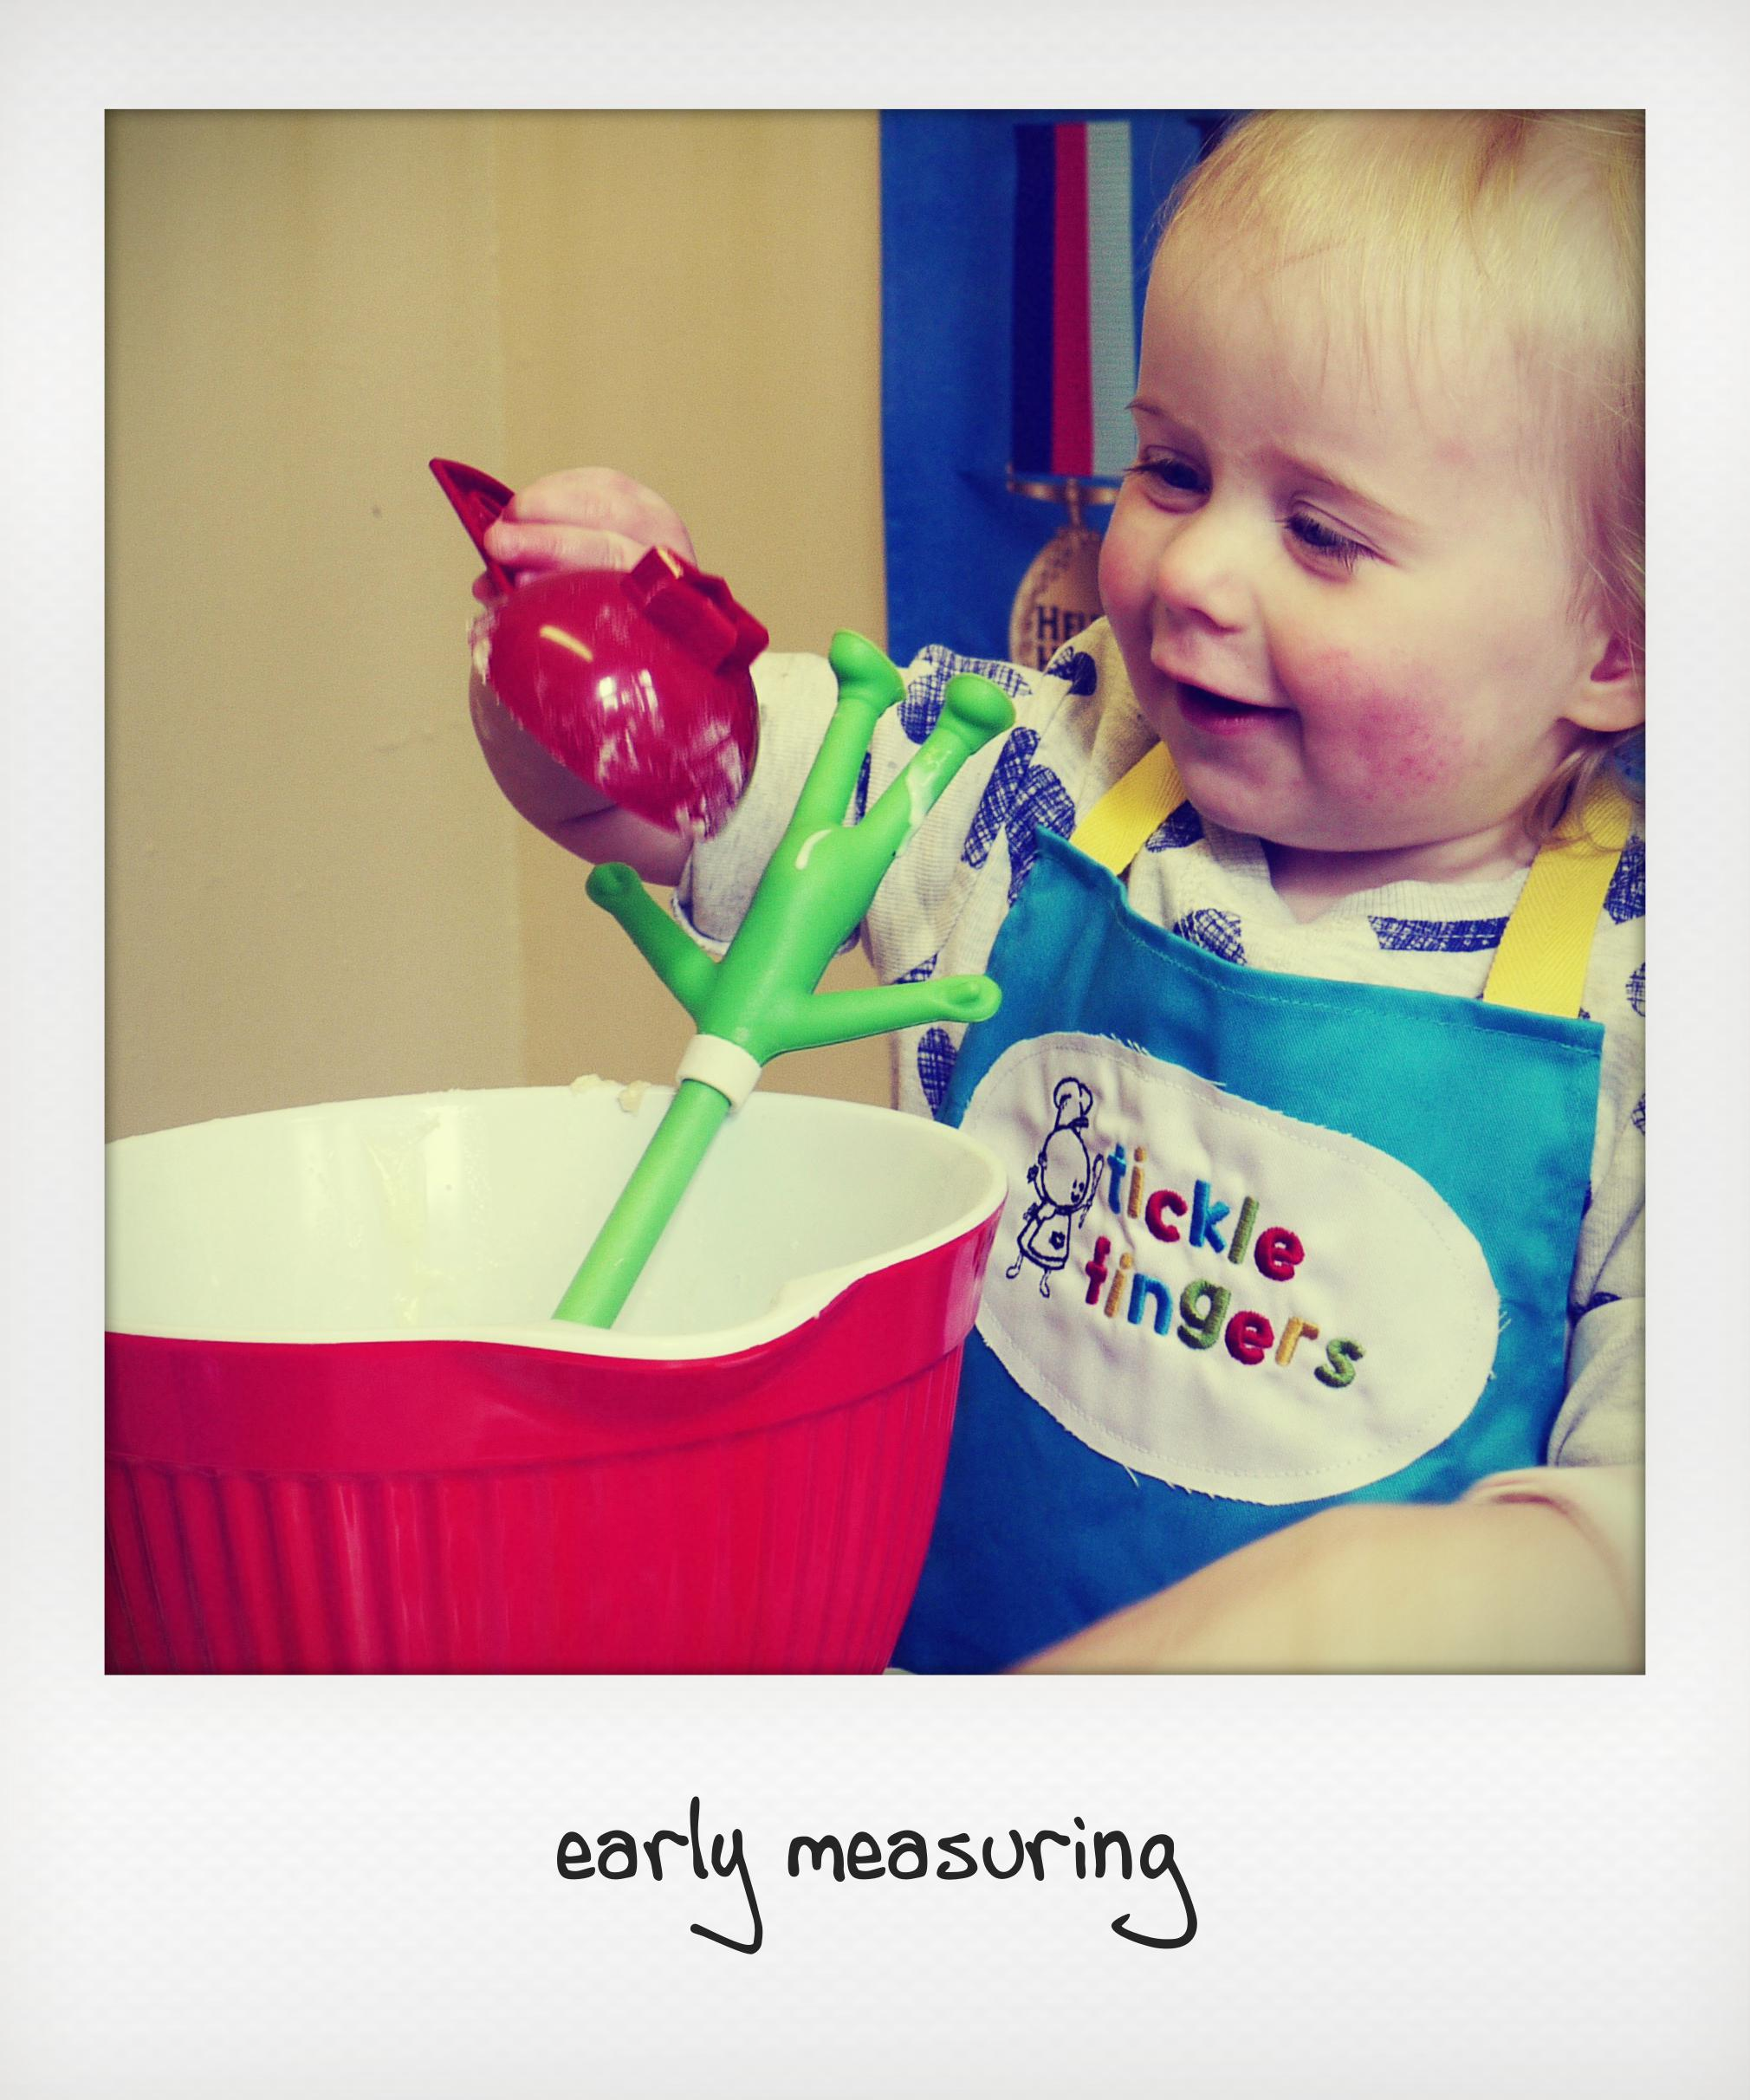 early measuring - copyright annabel woolmer